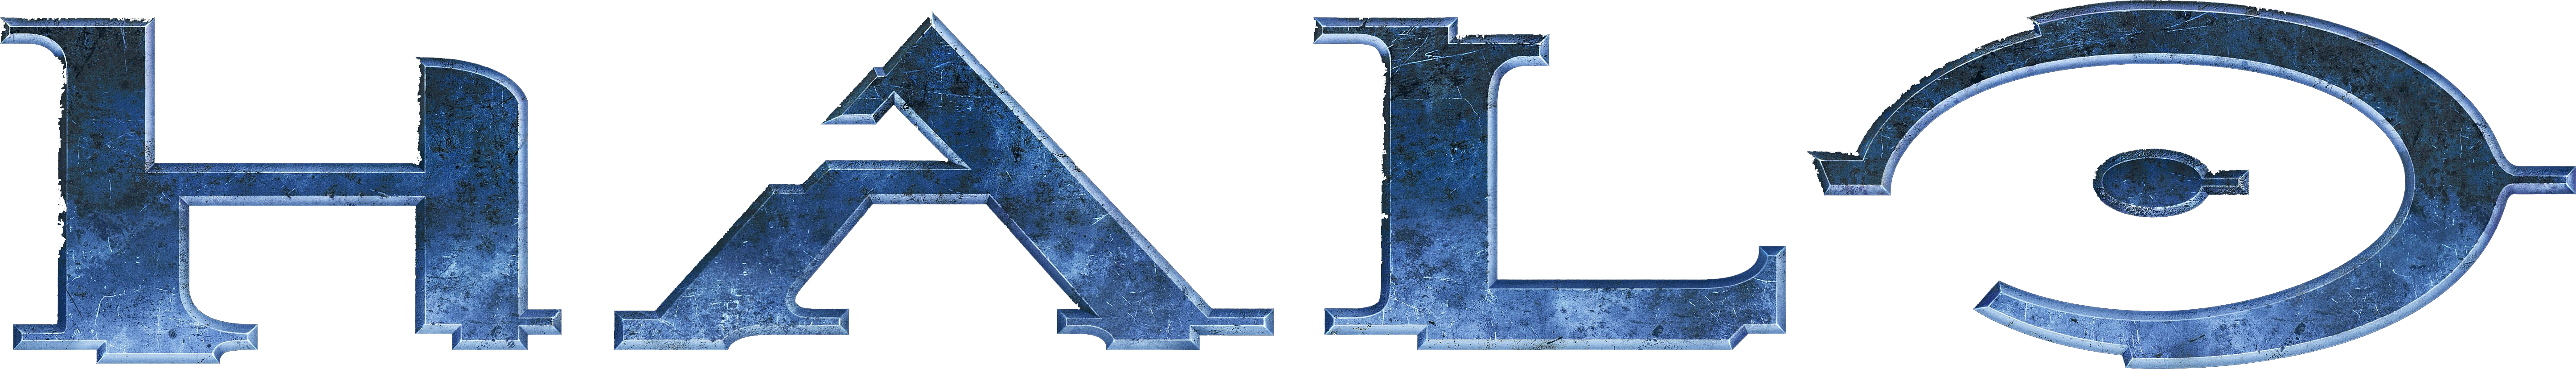 Halo png